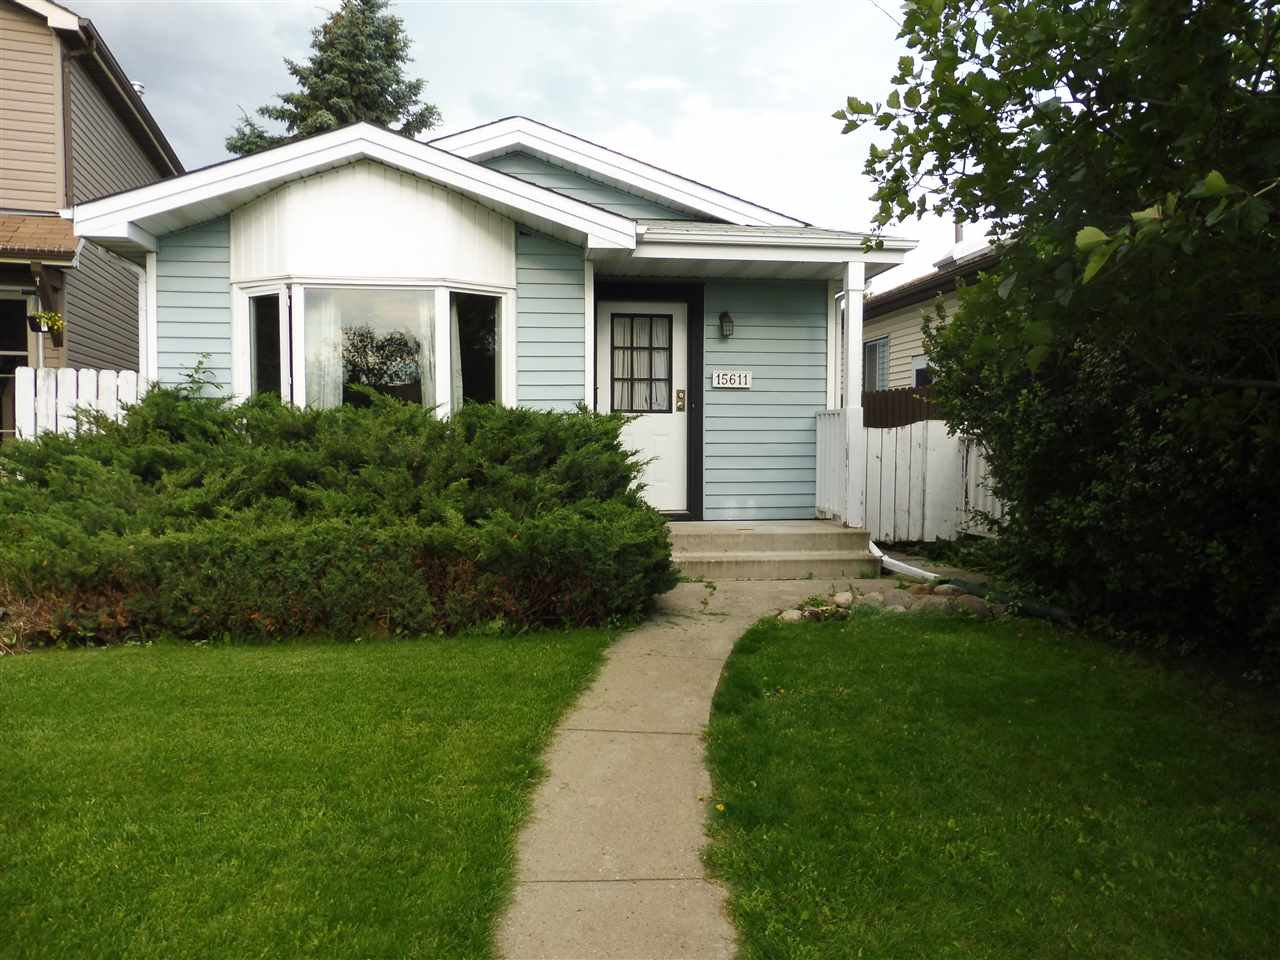 Main Photo: 15611 83A Street in Edmonton: Zone 28 House for sale : MLS®# E4169907